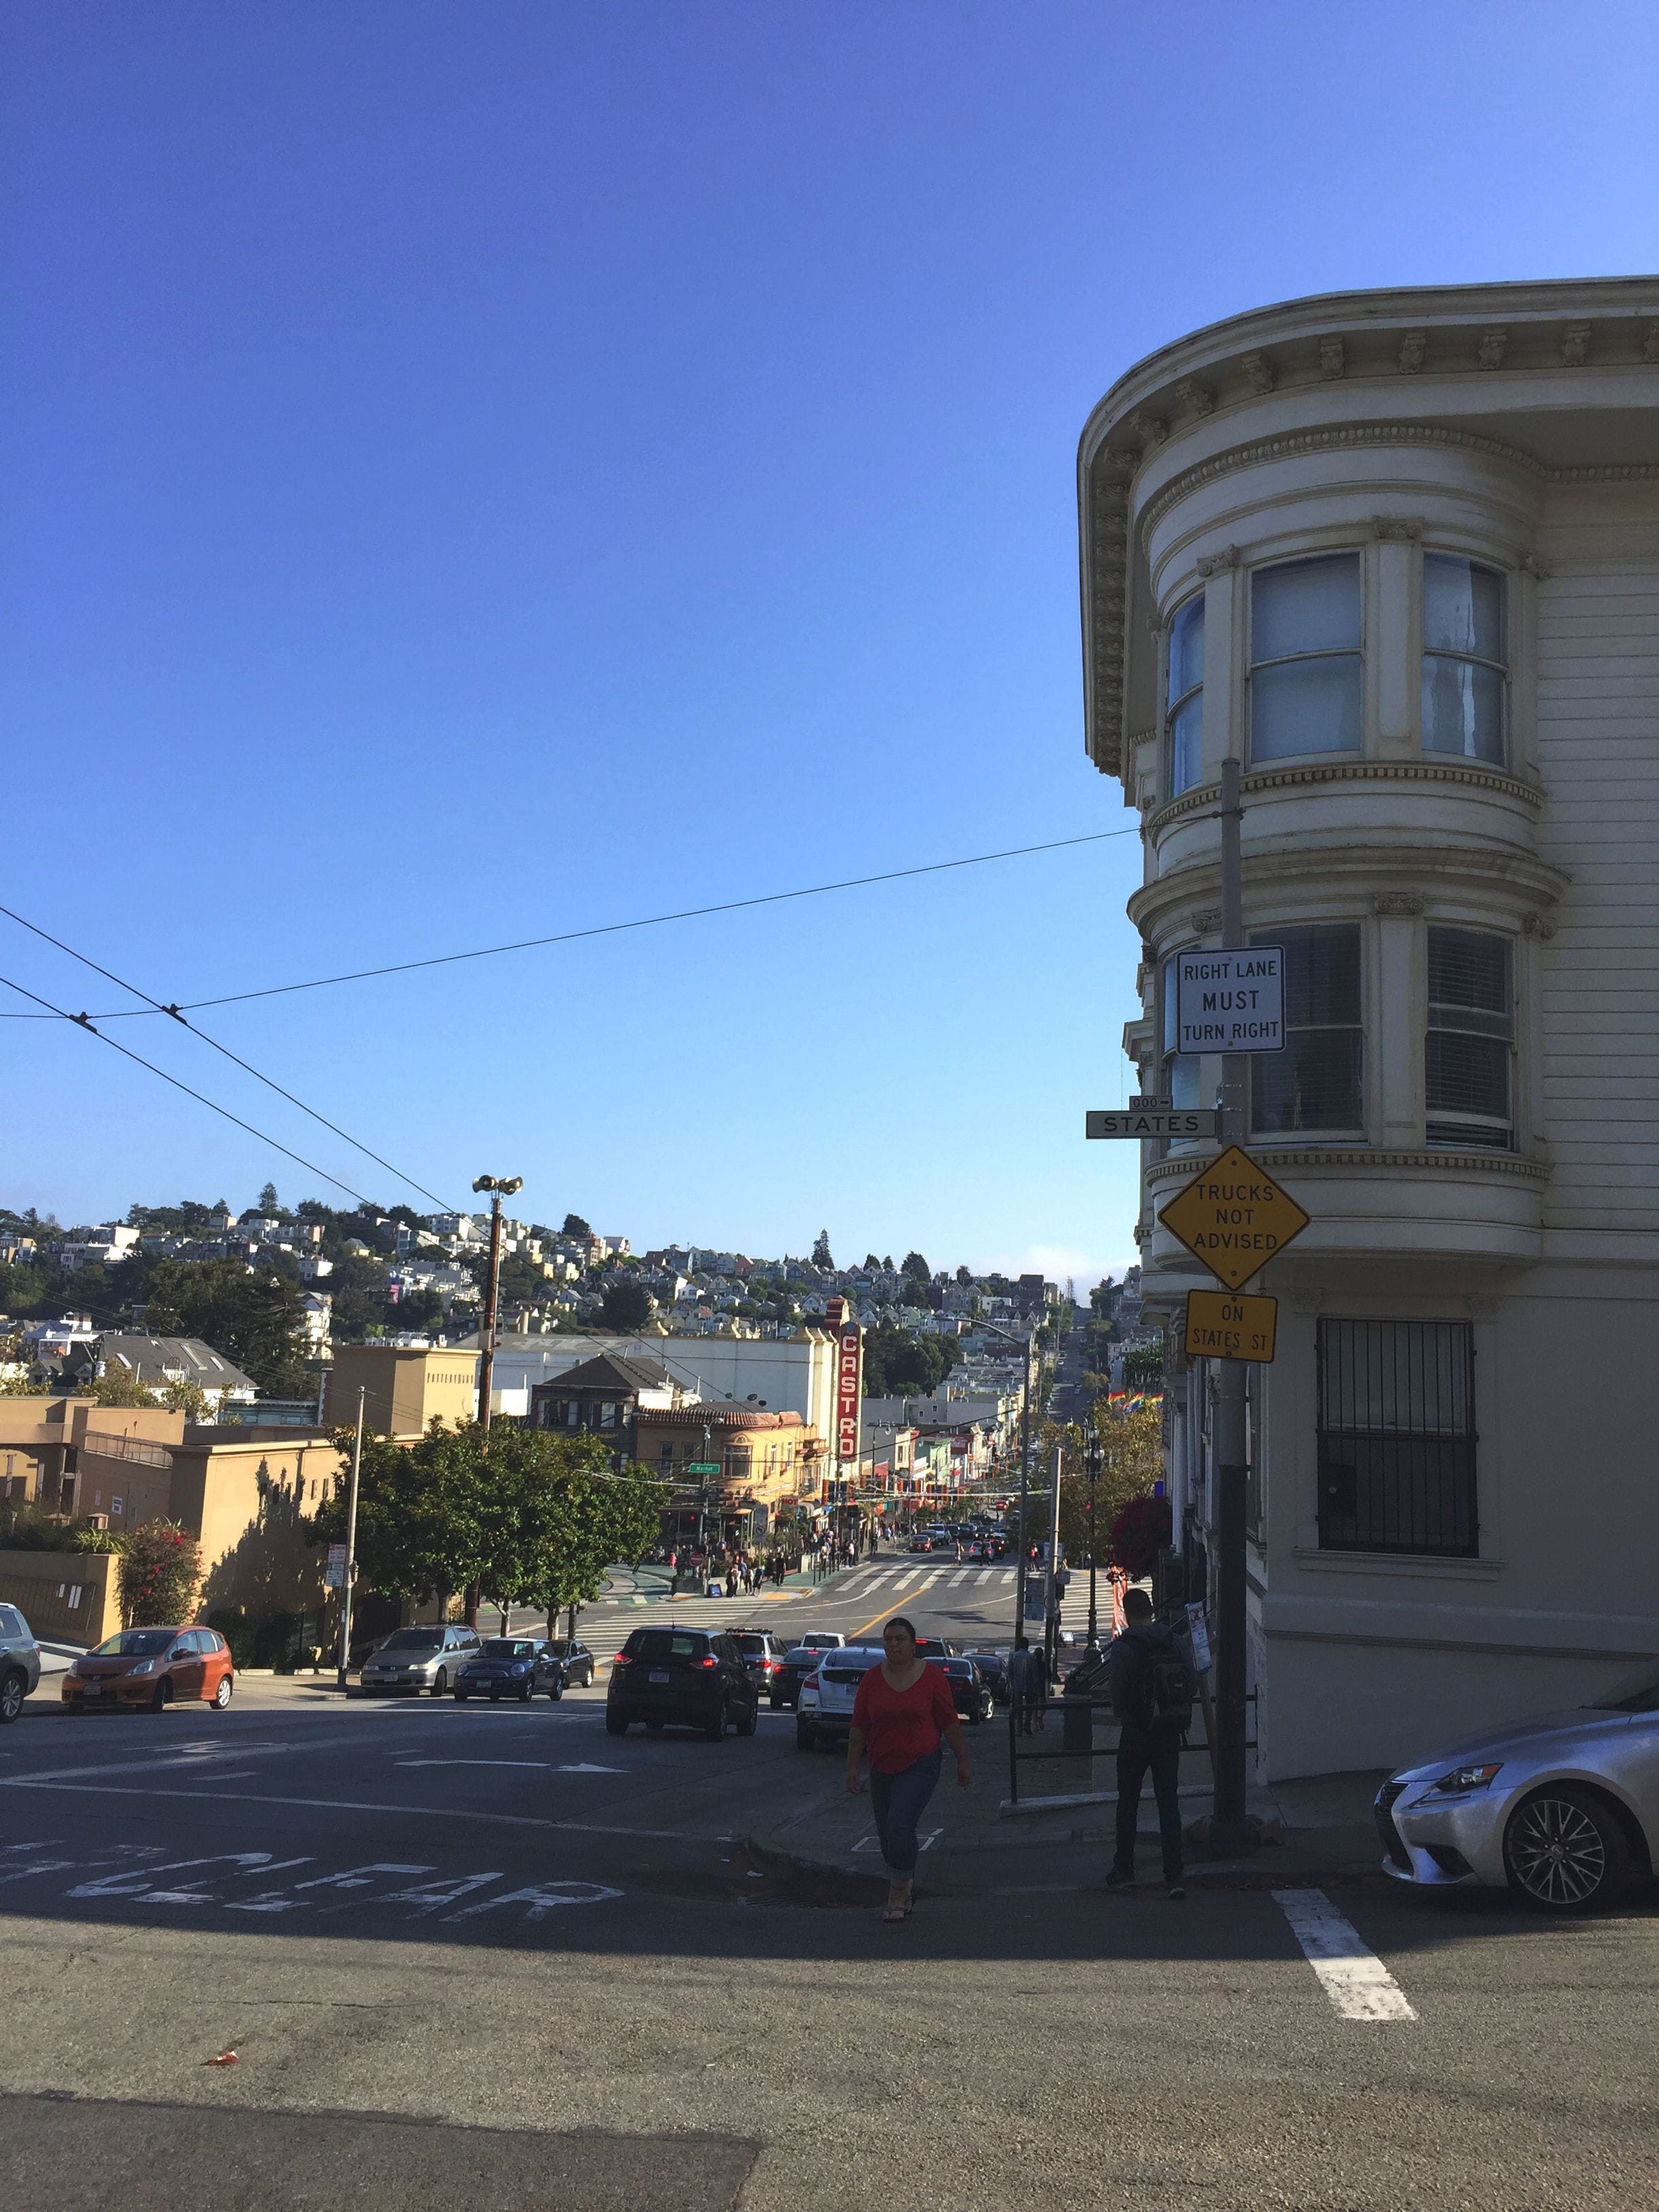 The streets of Castro